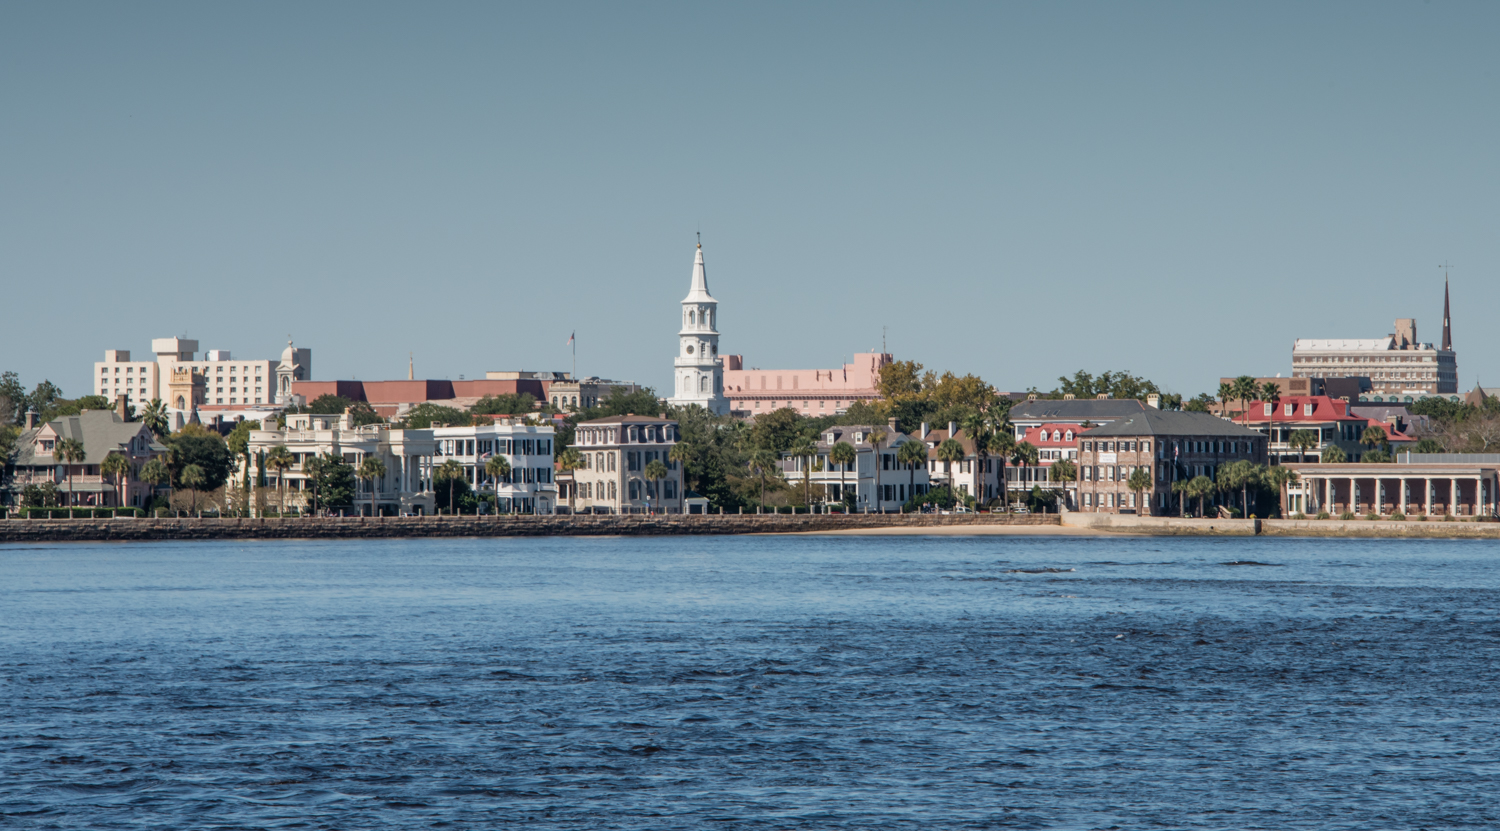 charleston harbor.jpg